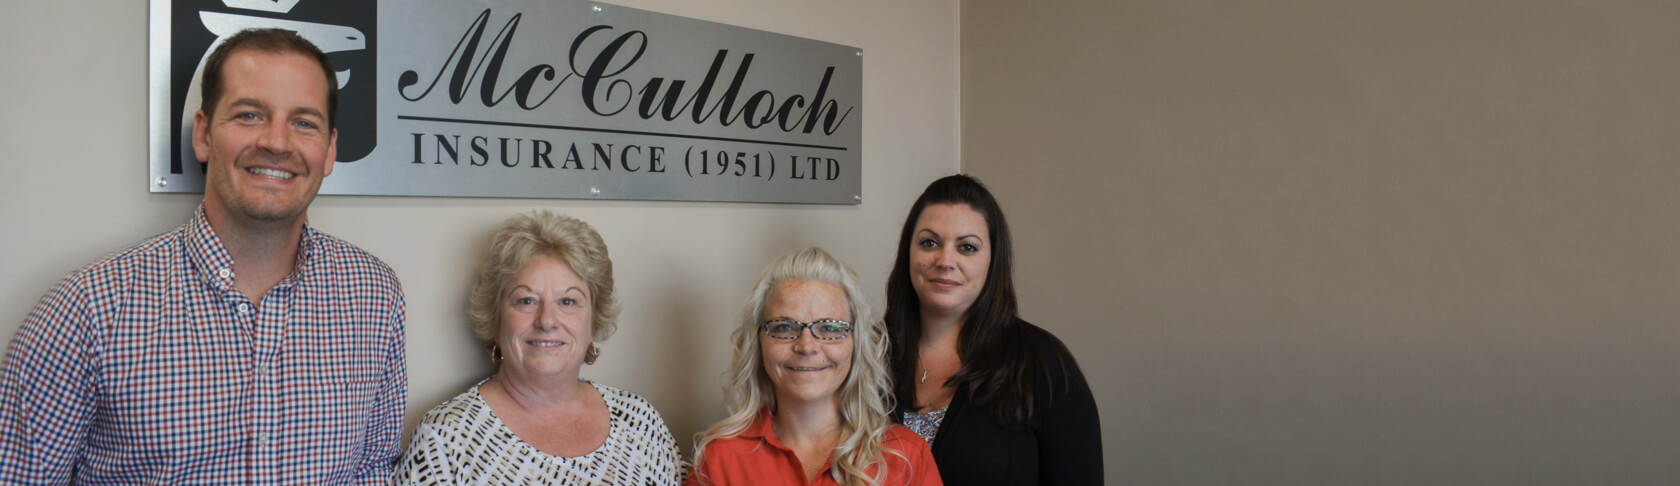 McCulloch Insurance - Our Team of Experts Page